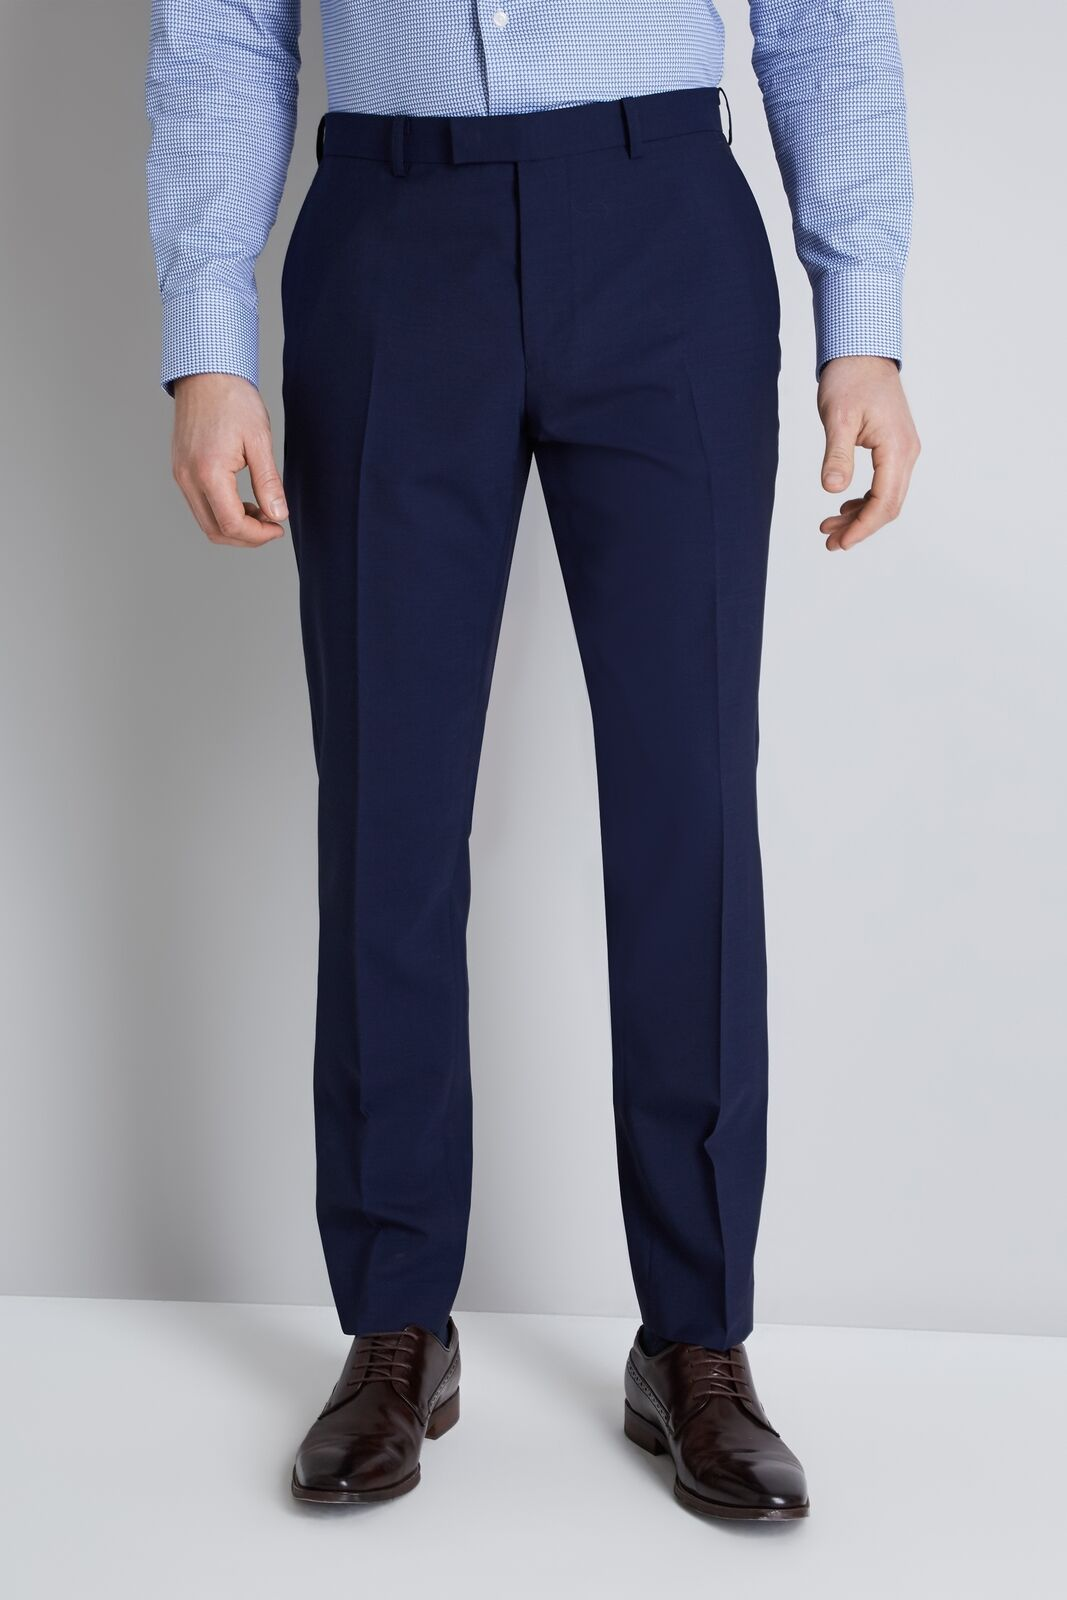 Lanificio F.Lli Cerruti Dal 1881 Cloth bluee Trousers Itravel Tailored Fit Pants